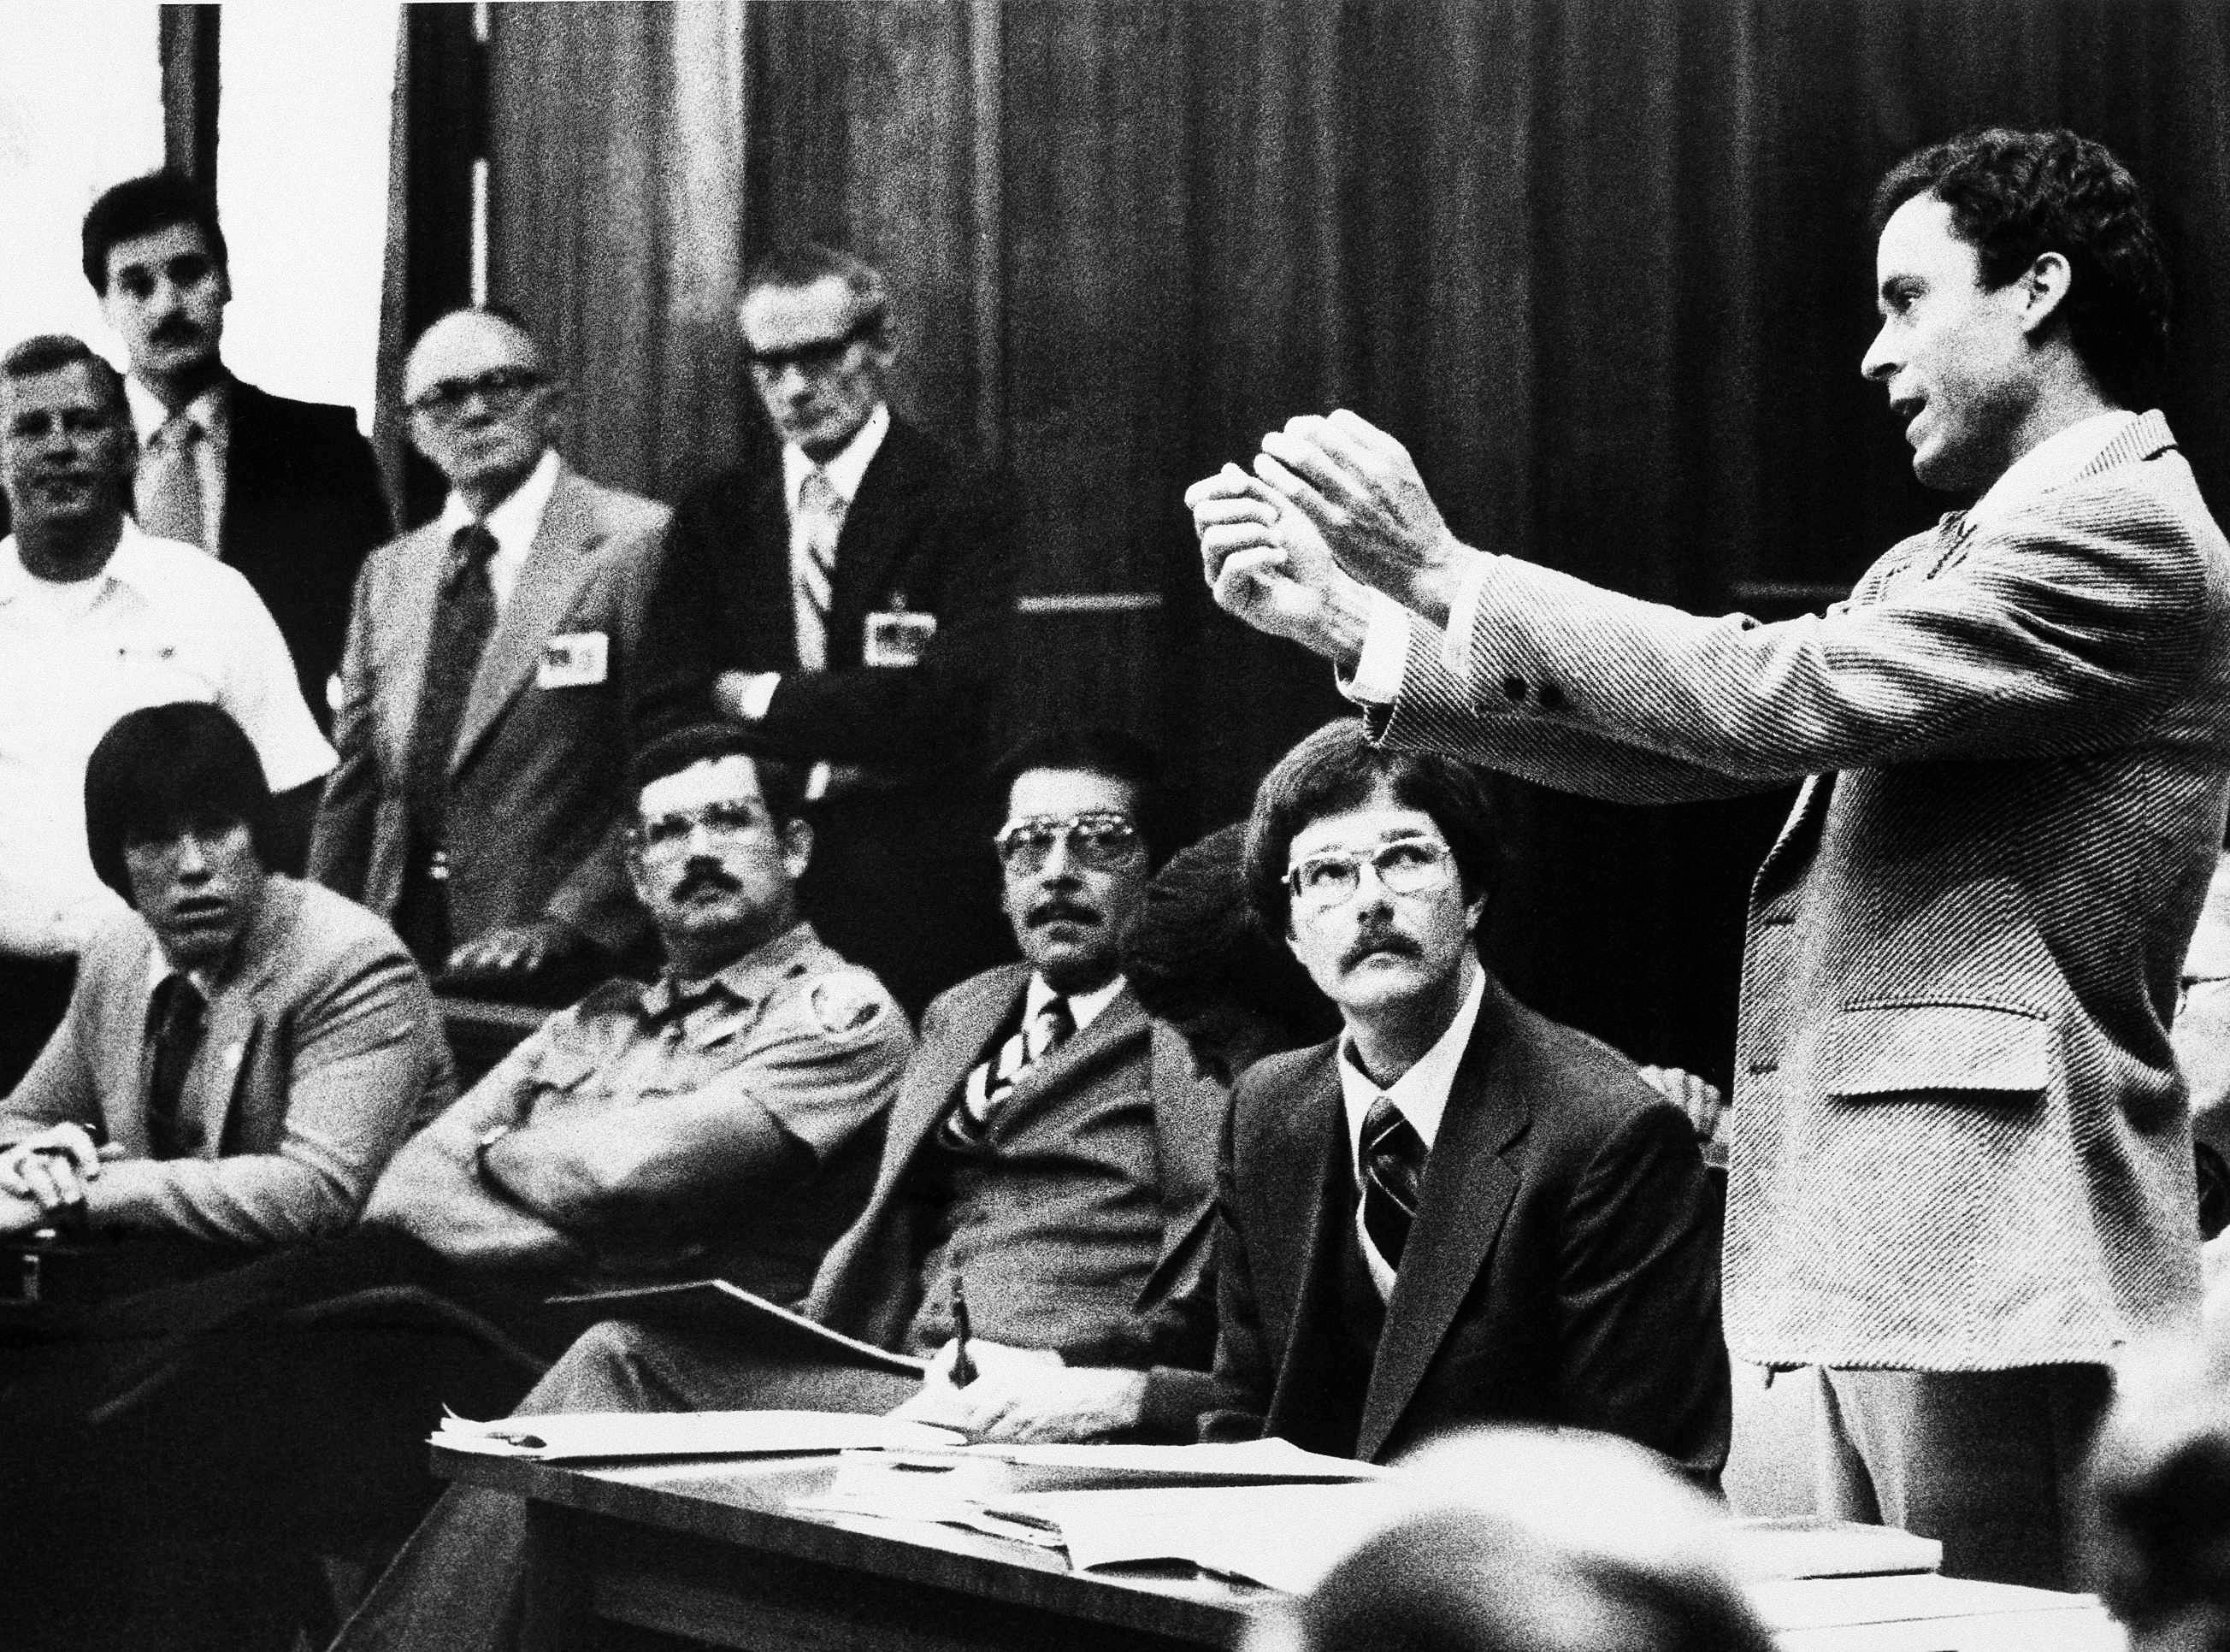 Theodore Bundy gestures as he presents a motion before Circuit Judge Edward Cowart, as Bundy's murder trial got under way in Miami on Monday, June 25, 1979.